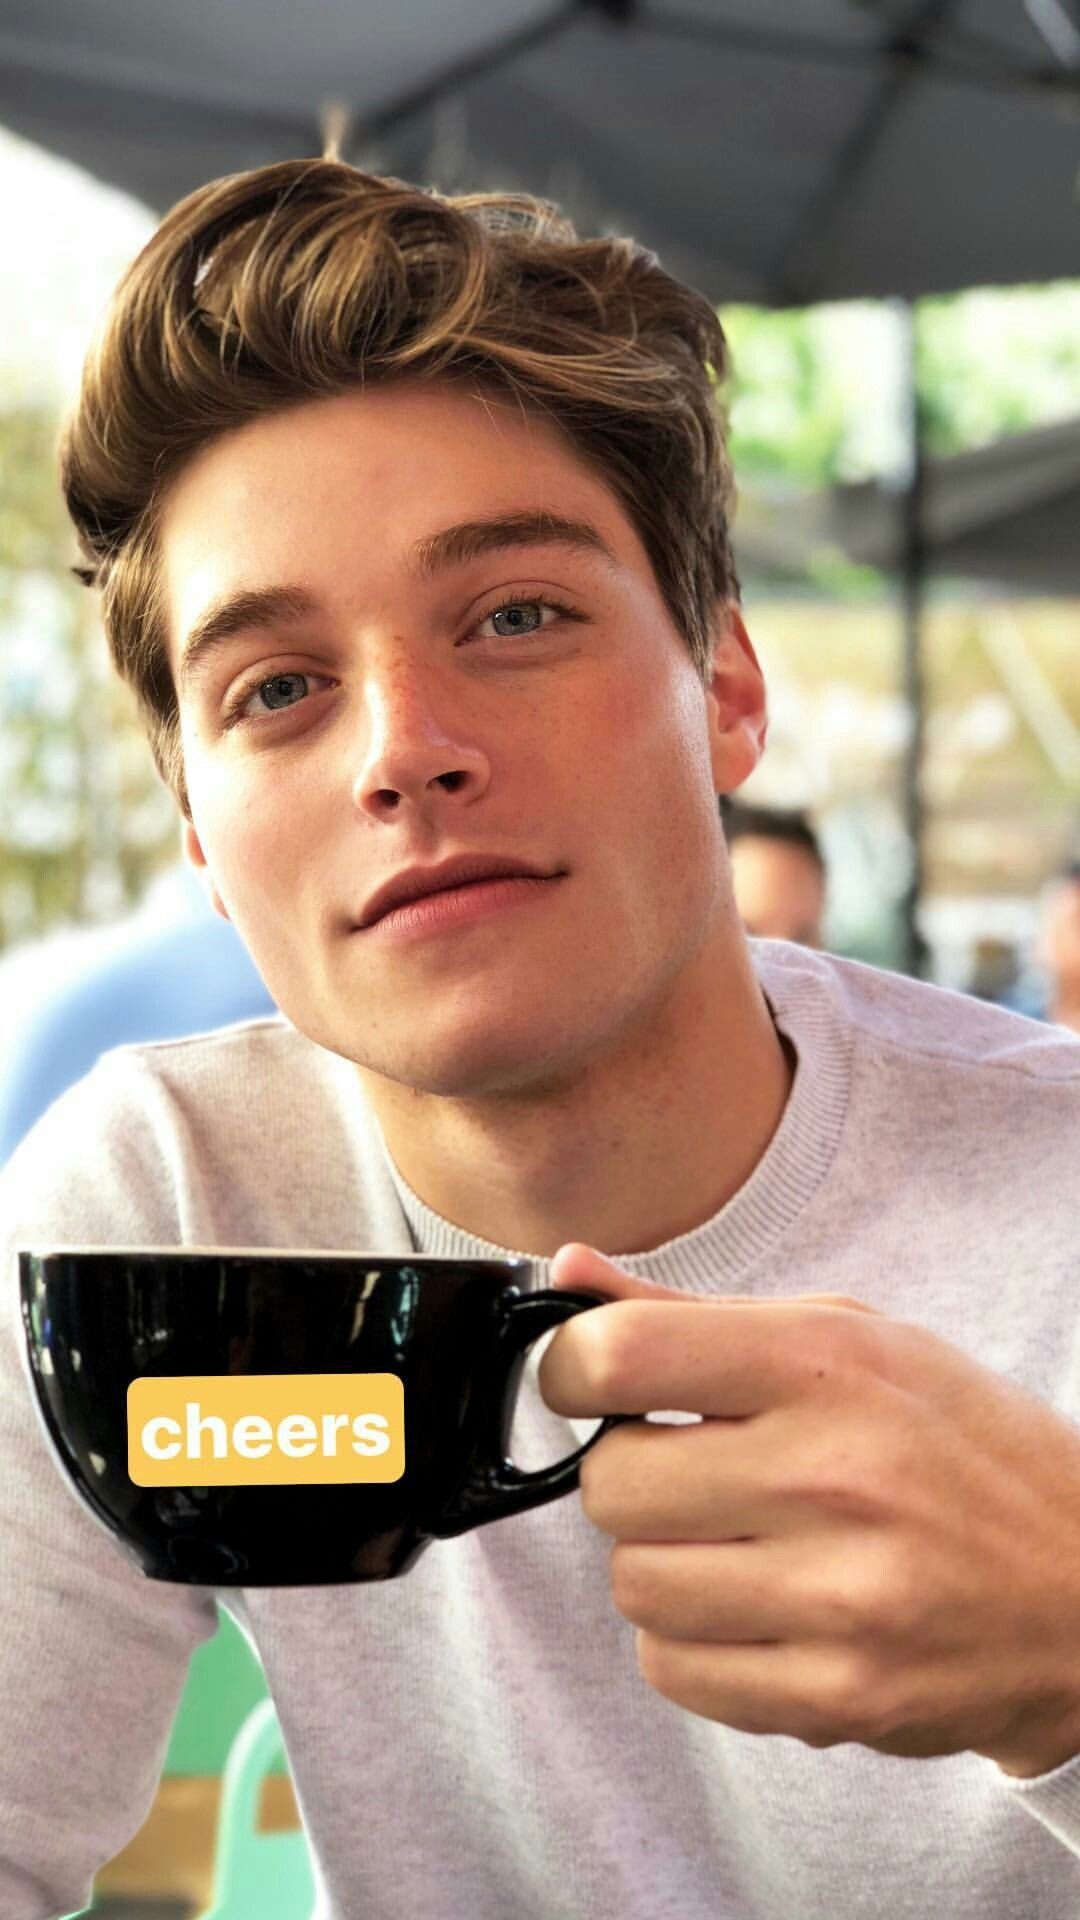 #froy gutierrez Thank you for this blessing